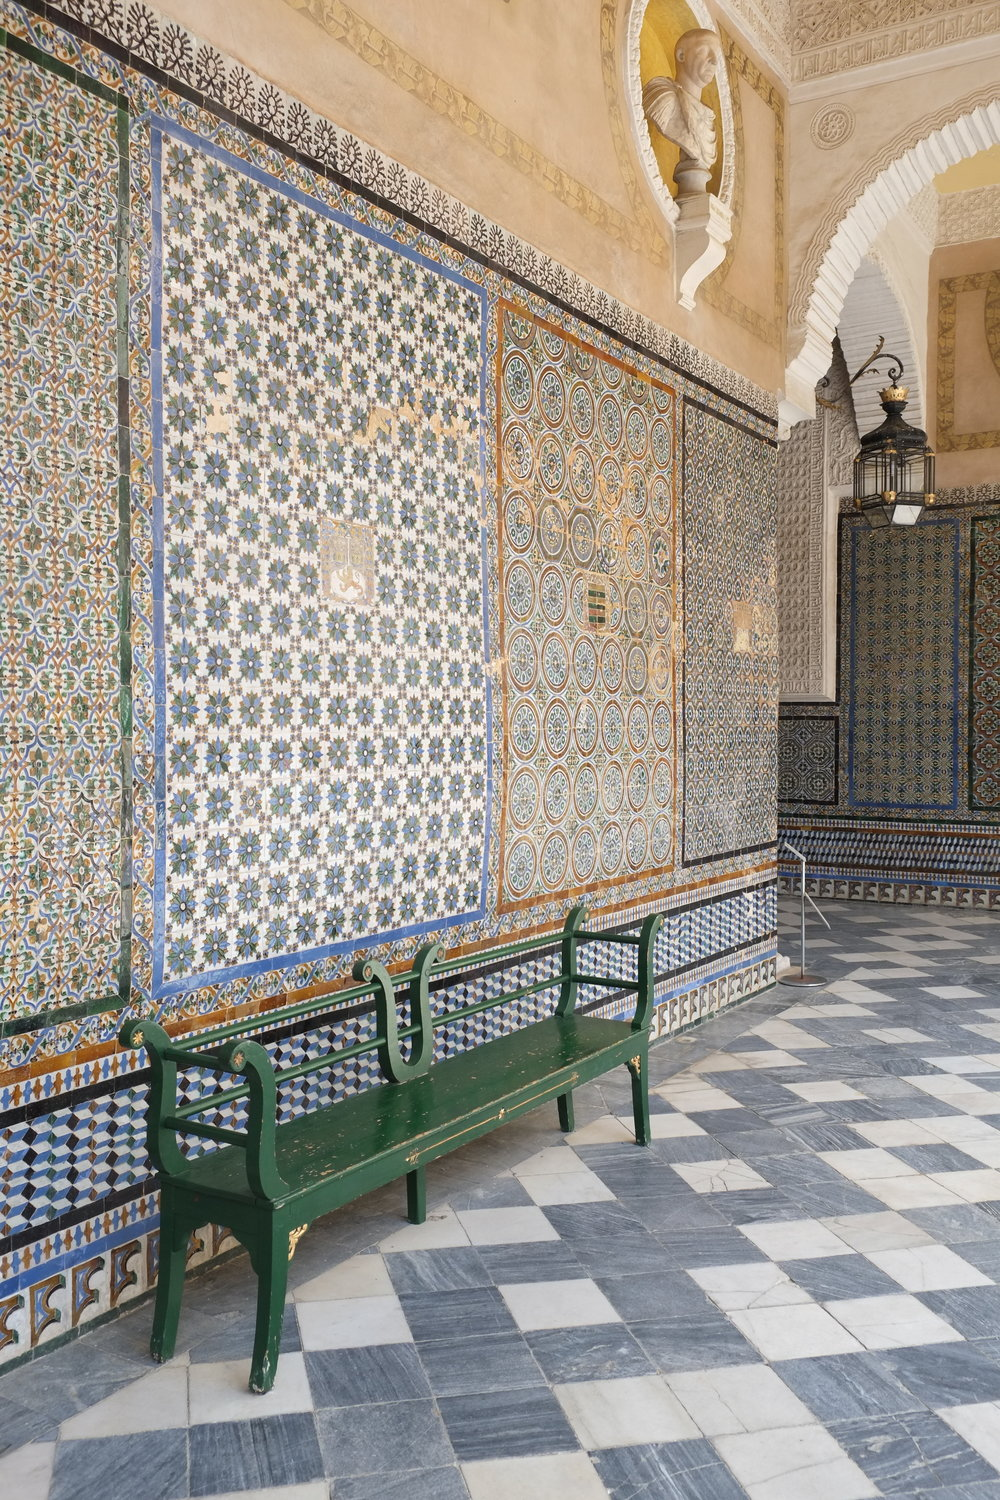 Take a seat at Casa de Pilatos